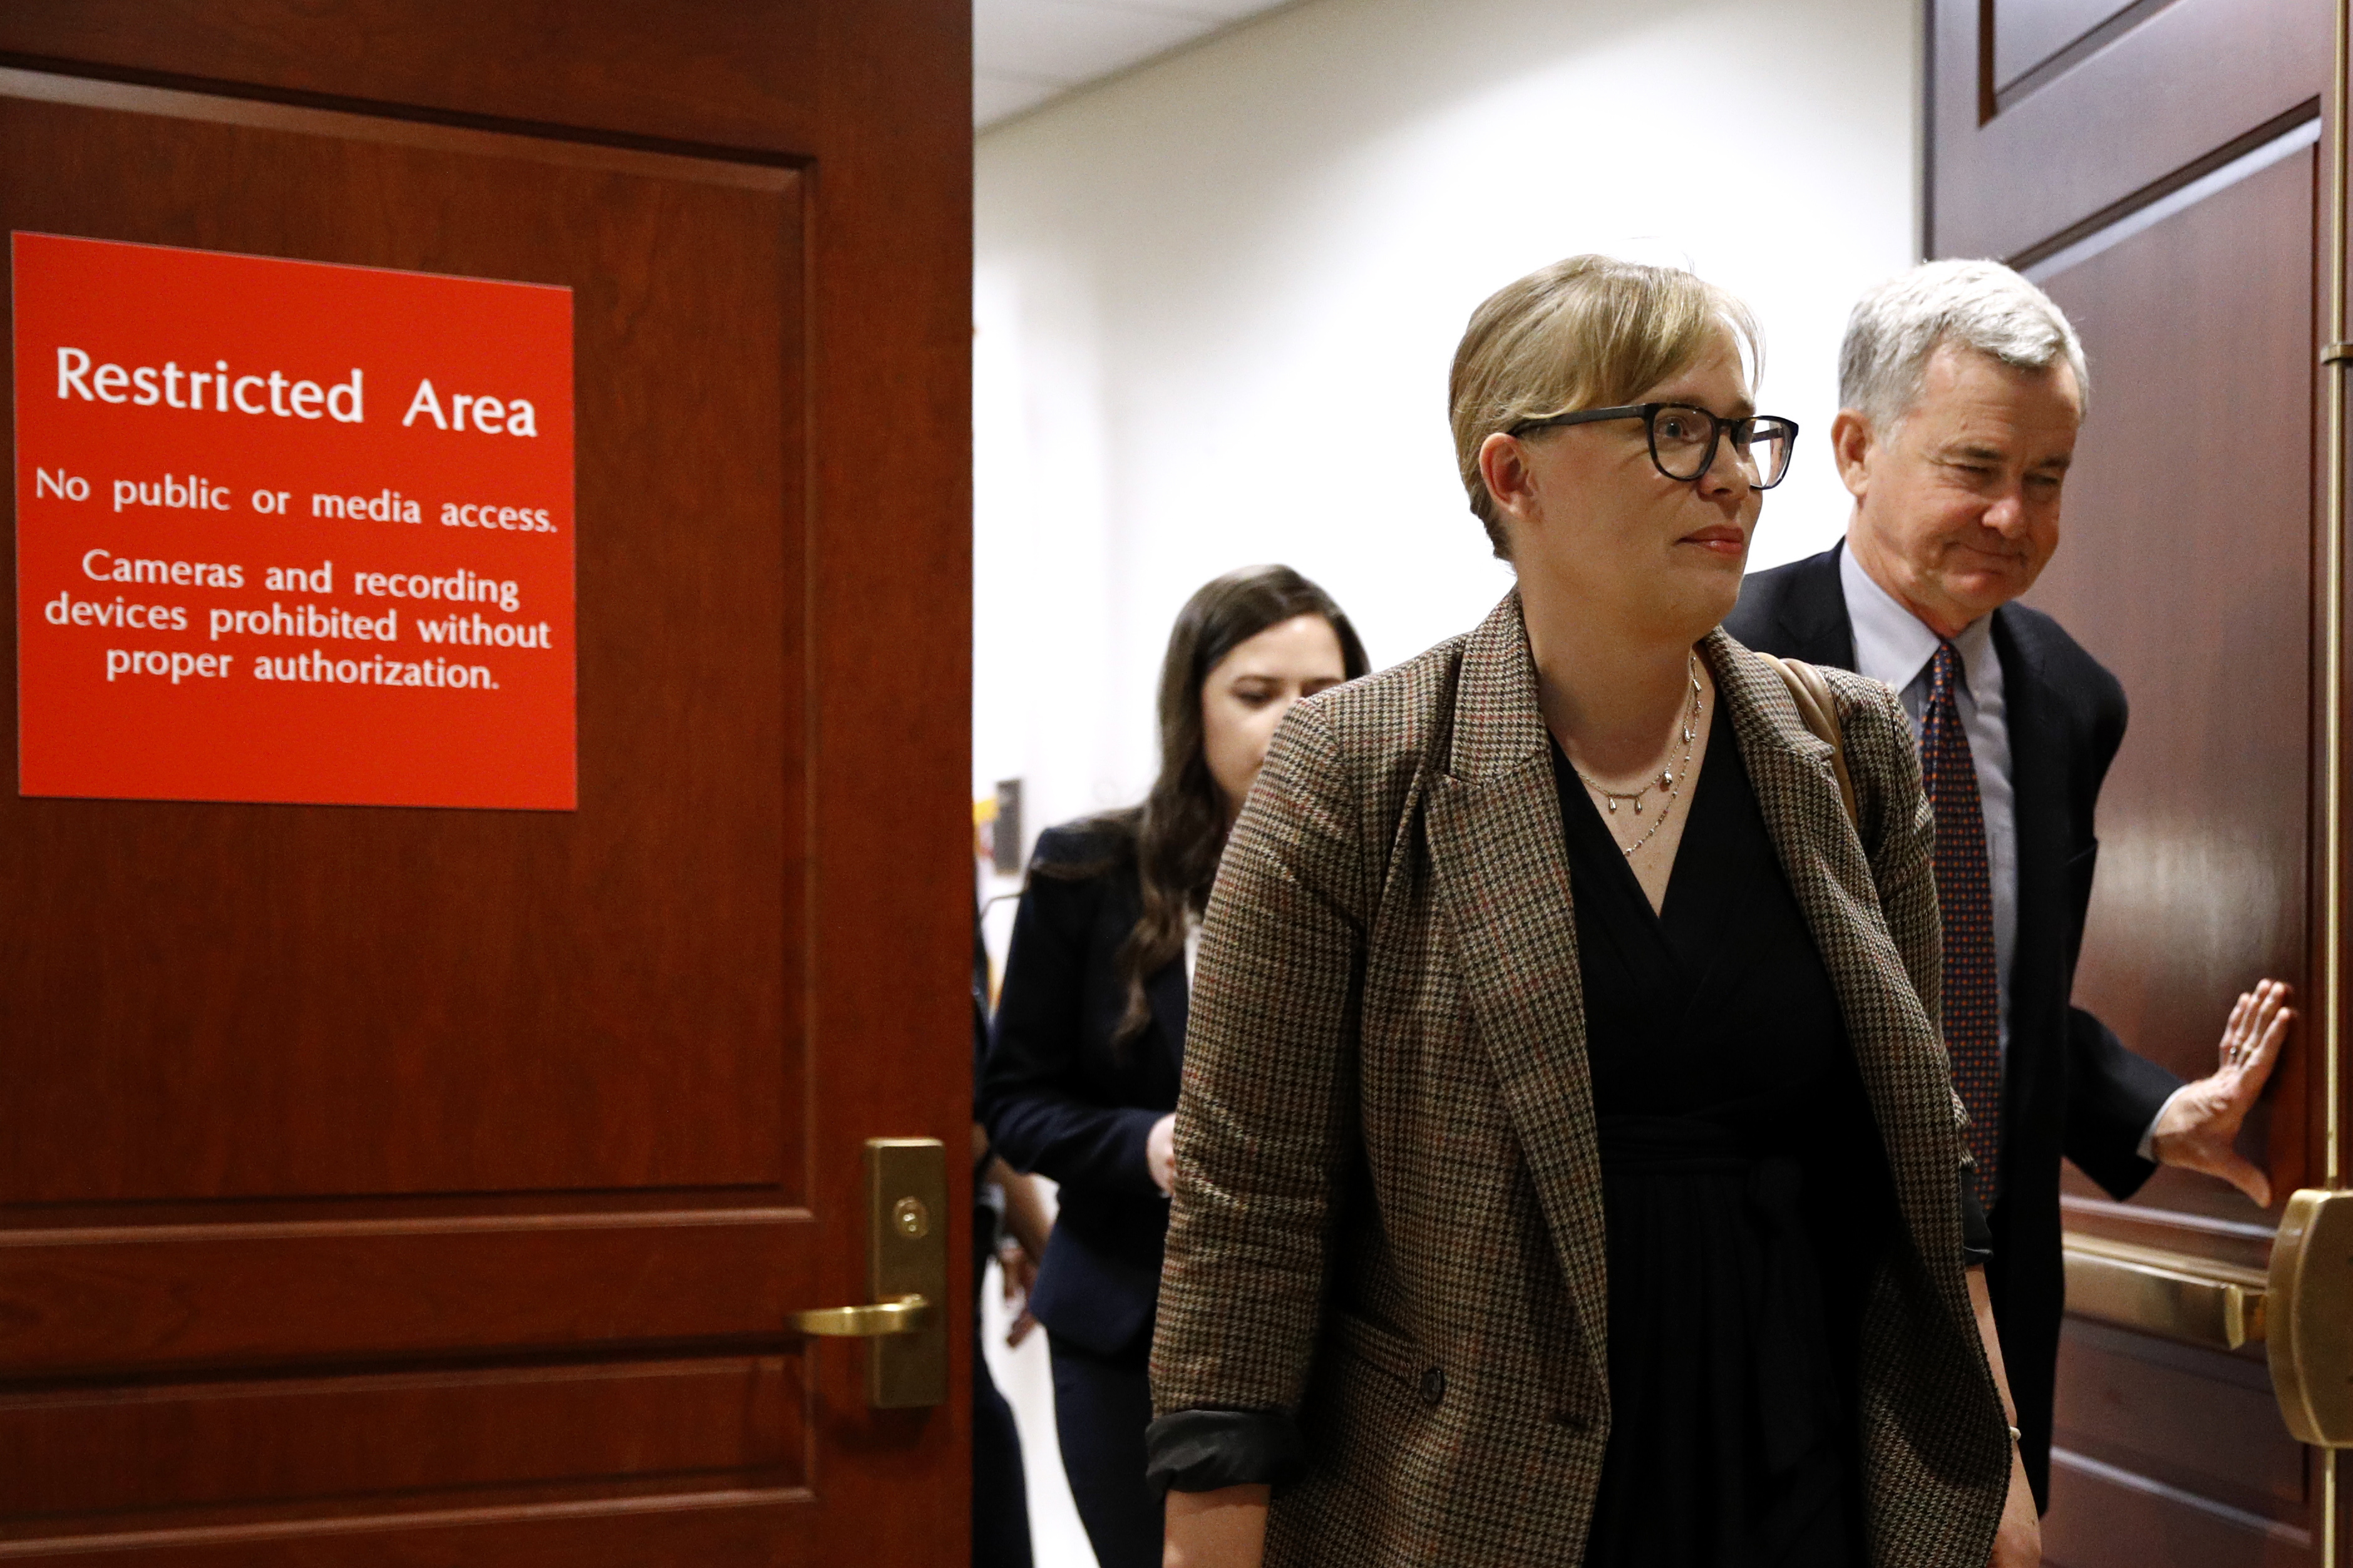 Catherine Croft, a State Department adviser on Ukraine, departs a secure area of the Capitol after a closed door meeting where she testified as part of the House impeachment inquiry into President Donald Trump, Wednesday, Oct. 30, 2019, on Capitol Hill in Washington.